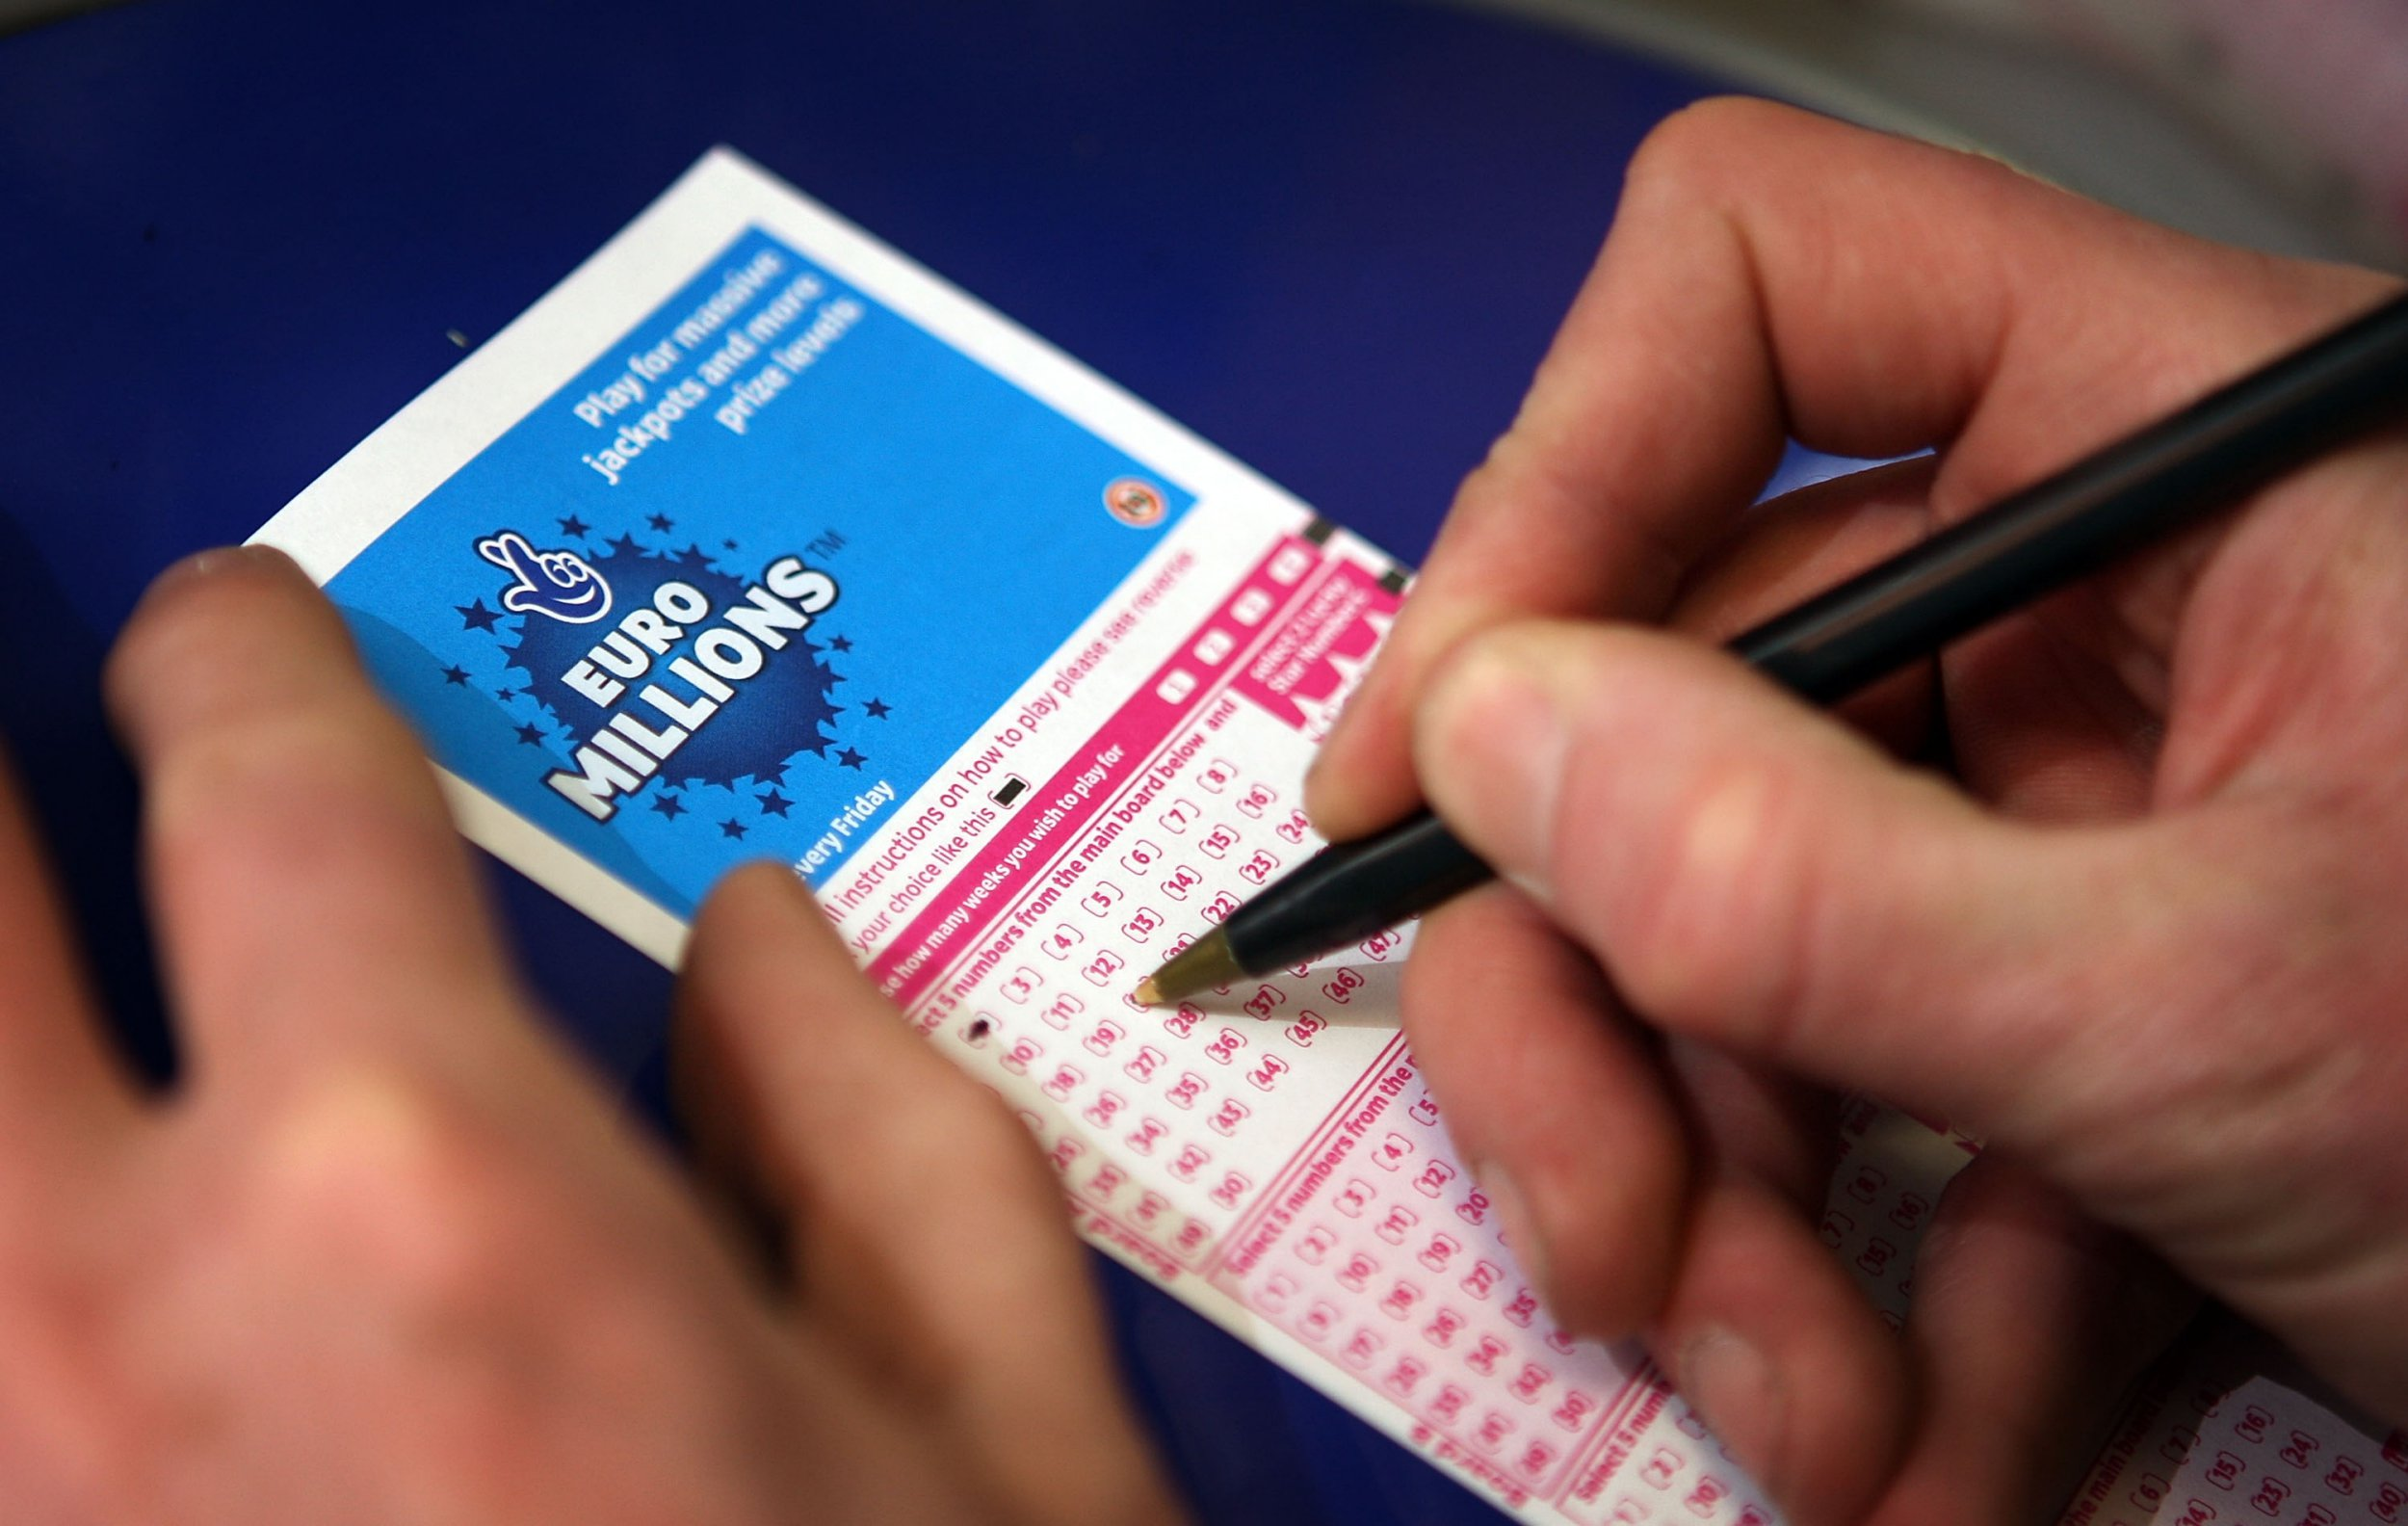 Lotto Euromillions Search For Missing 76 300 000 Euromillions Lottery Winner